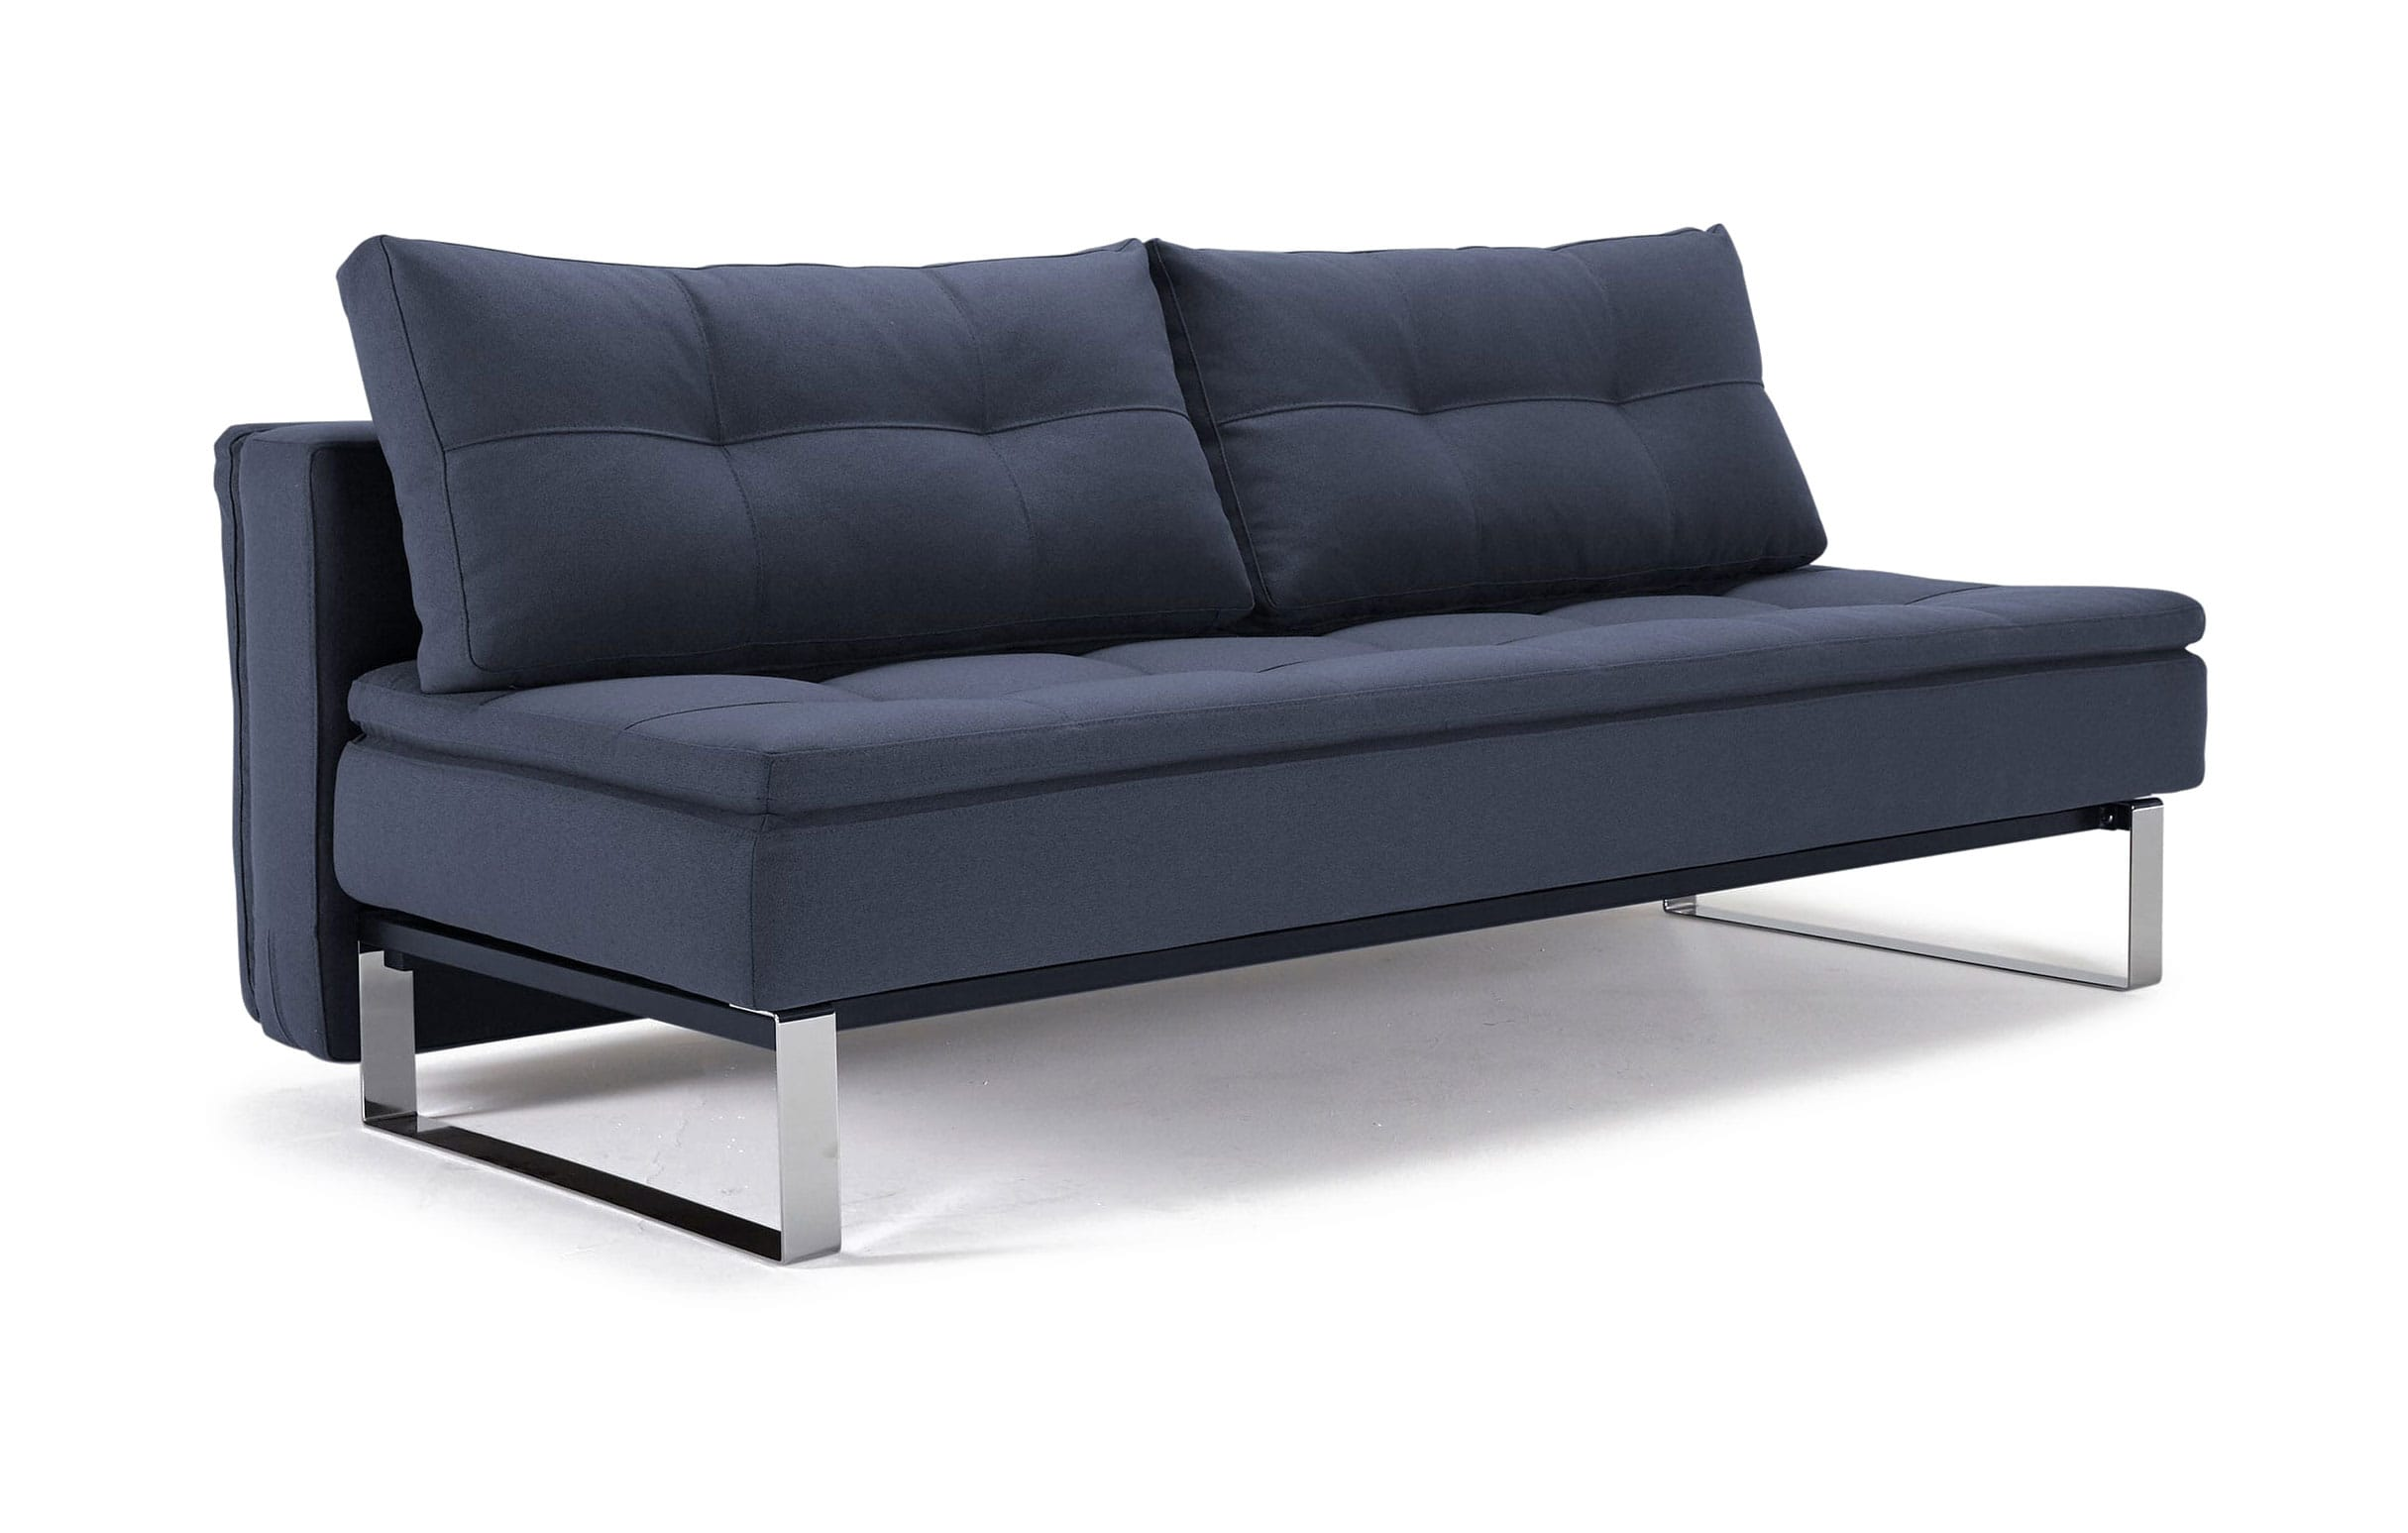 Awe Inspiring Supremax Deluxe Excess Sofa Bed Queen Size Mixed Dance Blue By Innovation Pdpeps Interior Chair Design Pdpepsorg